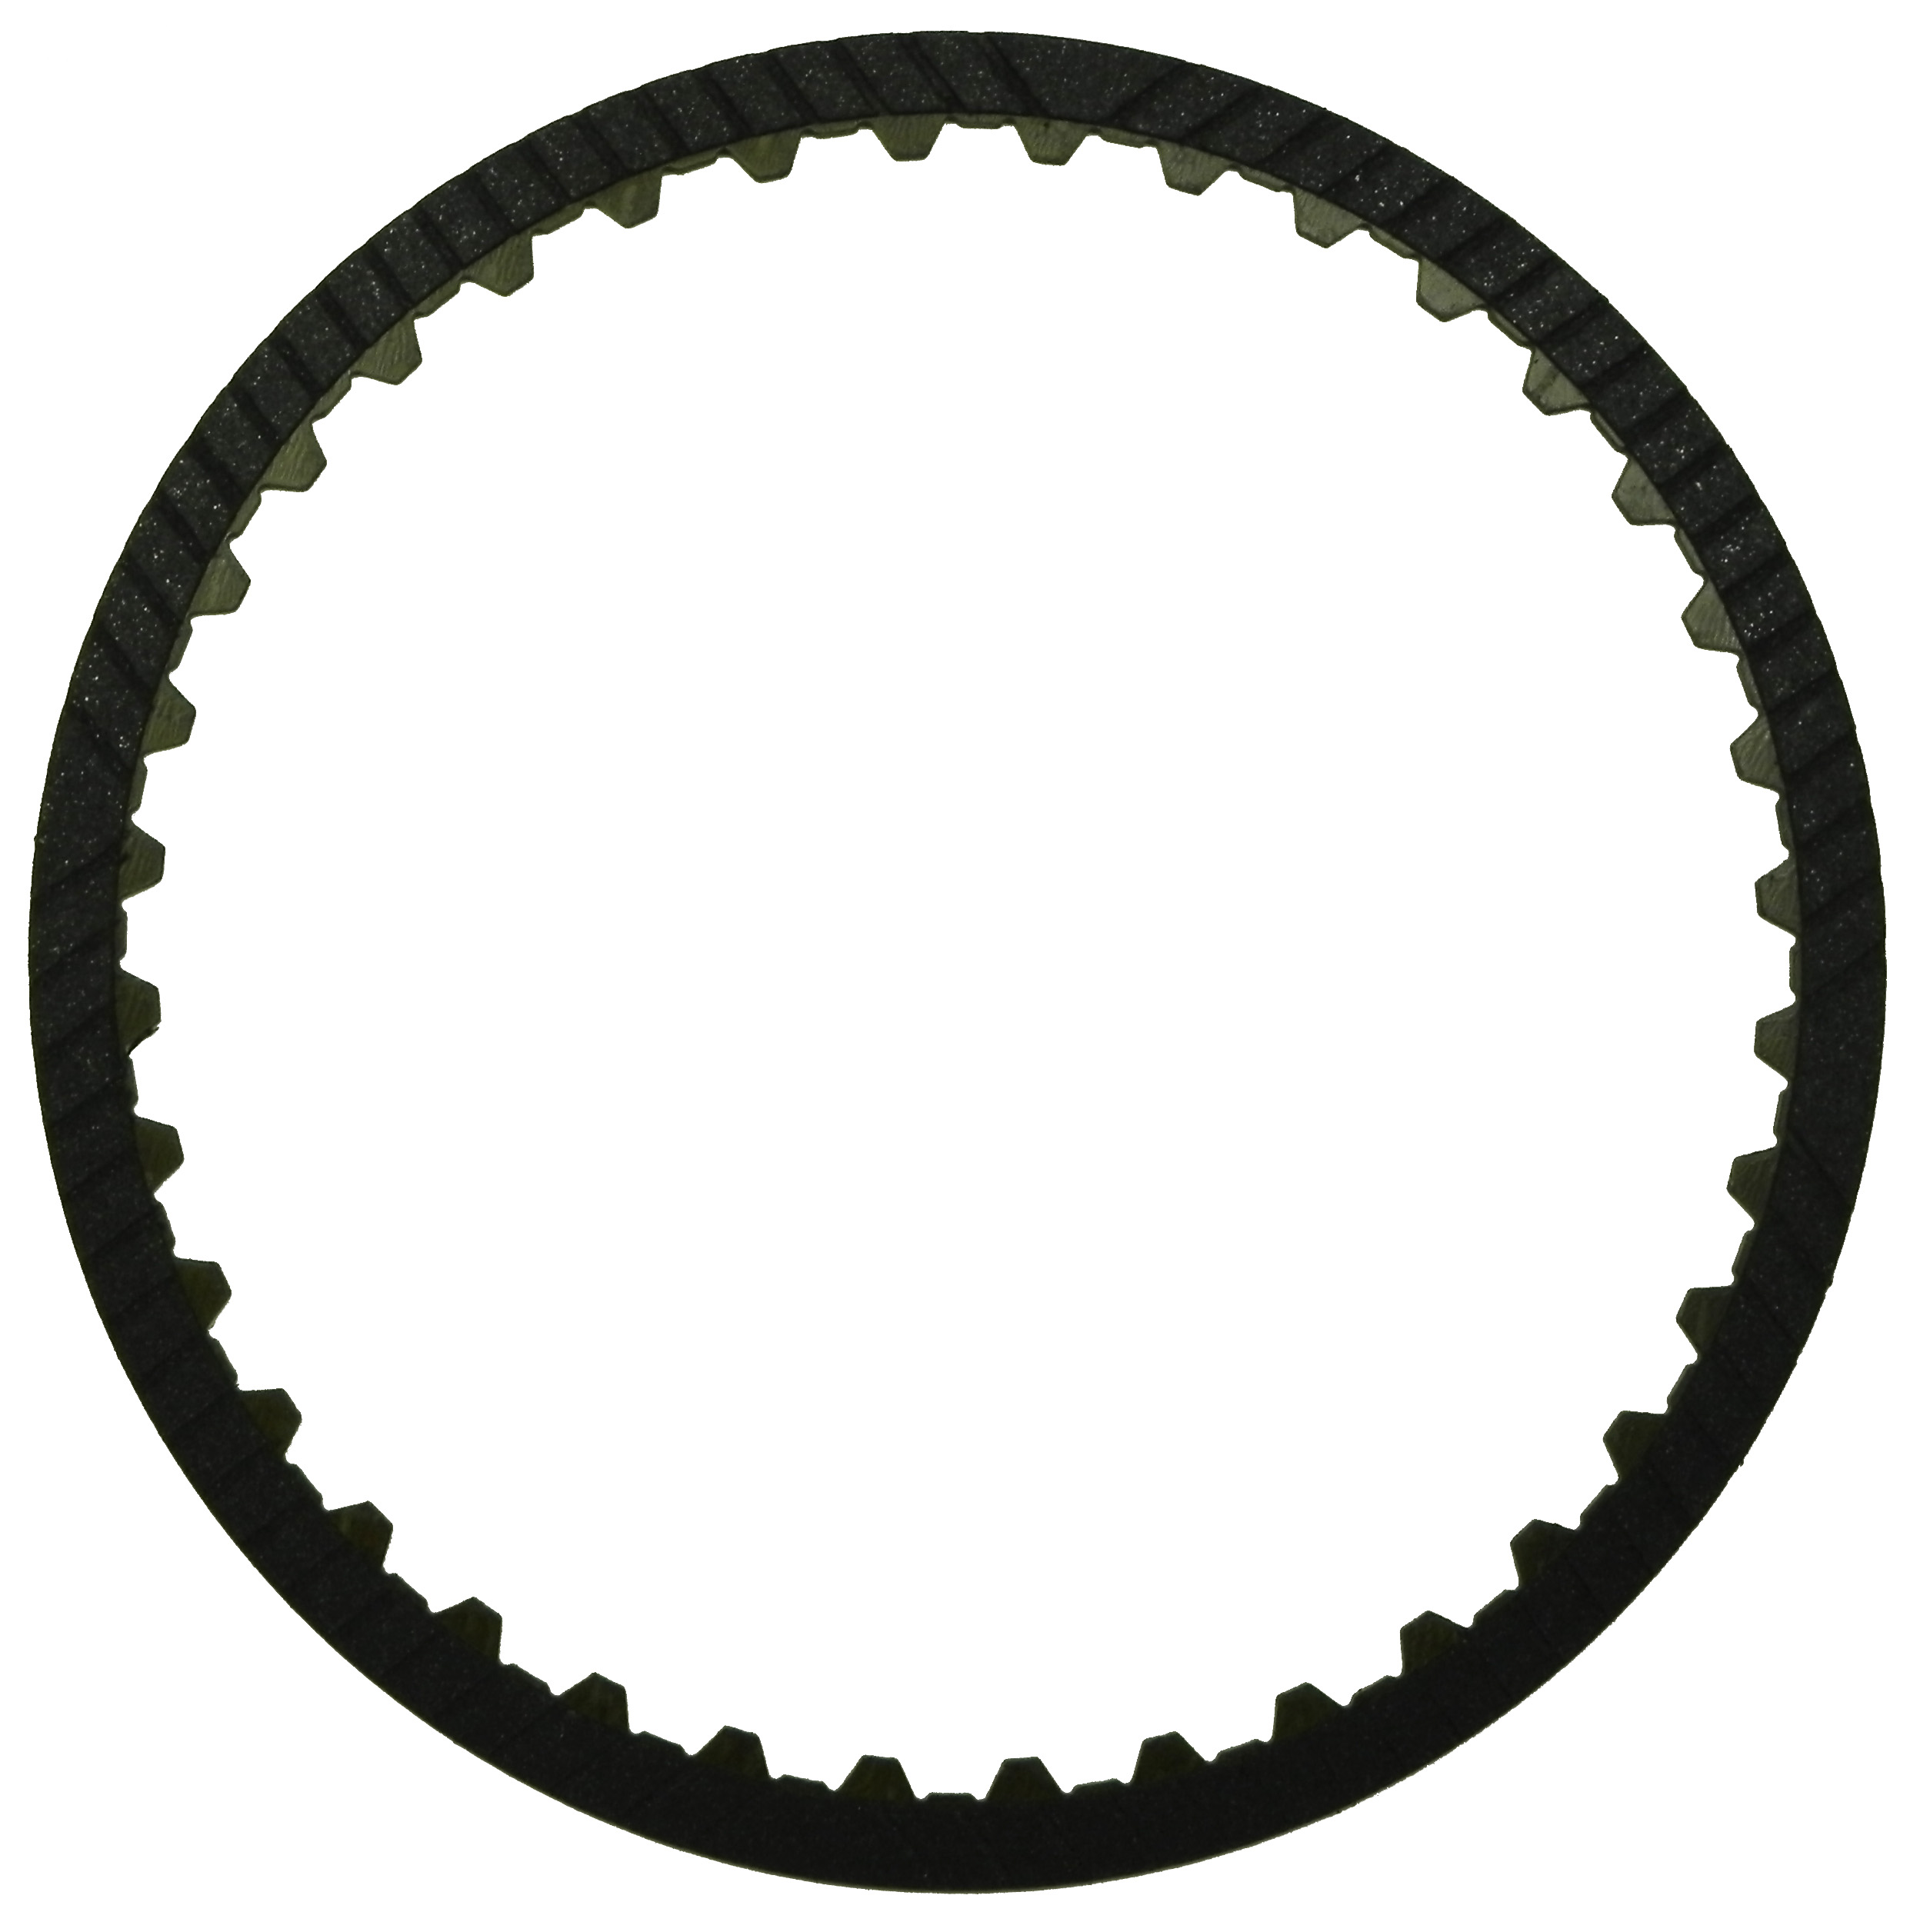 R559785 | 2005-ON Friction Clutch Plate High Energy K2 Clutch Single Sided, ID Spline High Energy